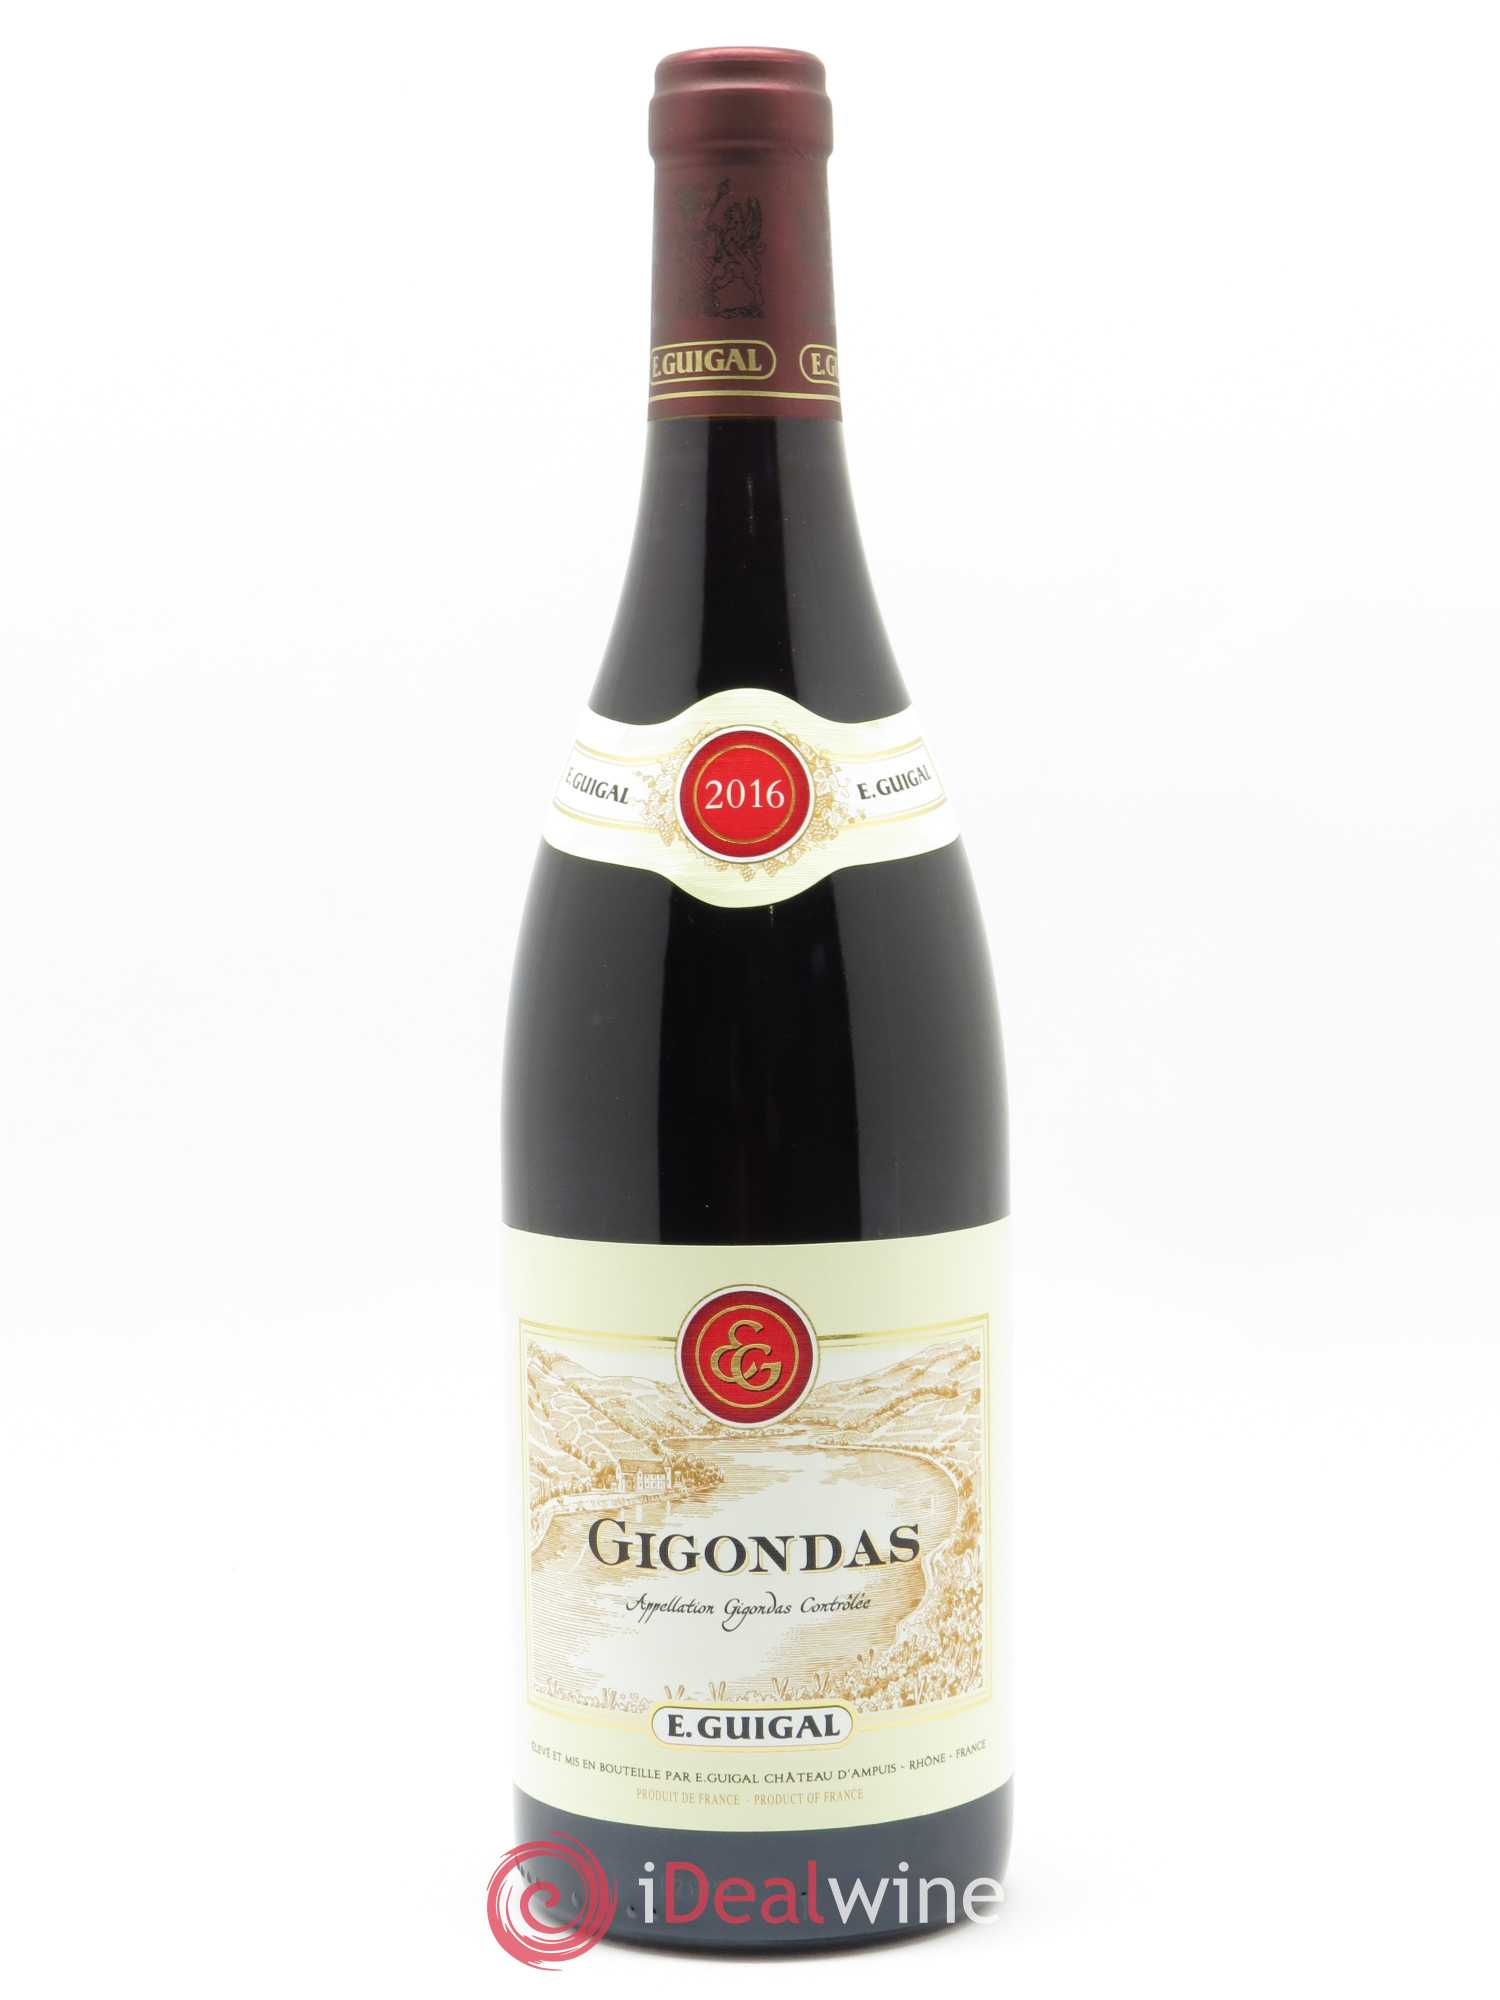 Gigondas Guigal  2016 - Lot of 1 Bottle